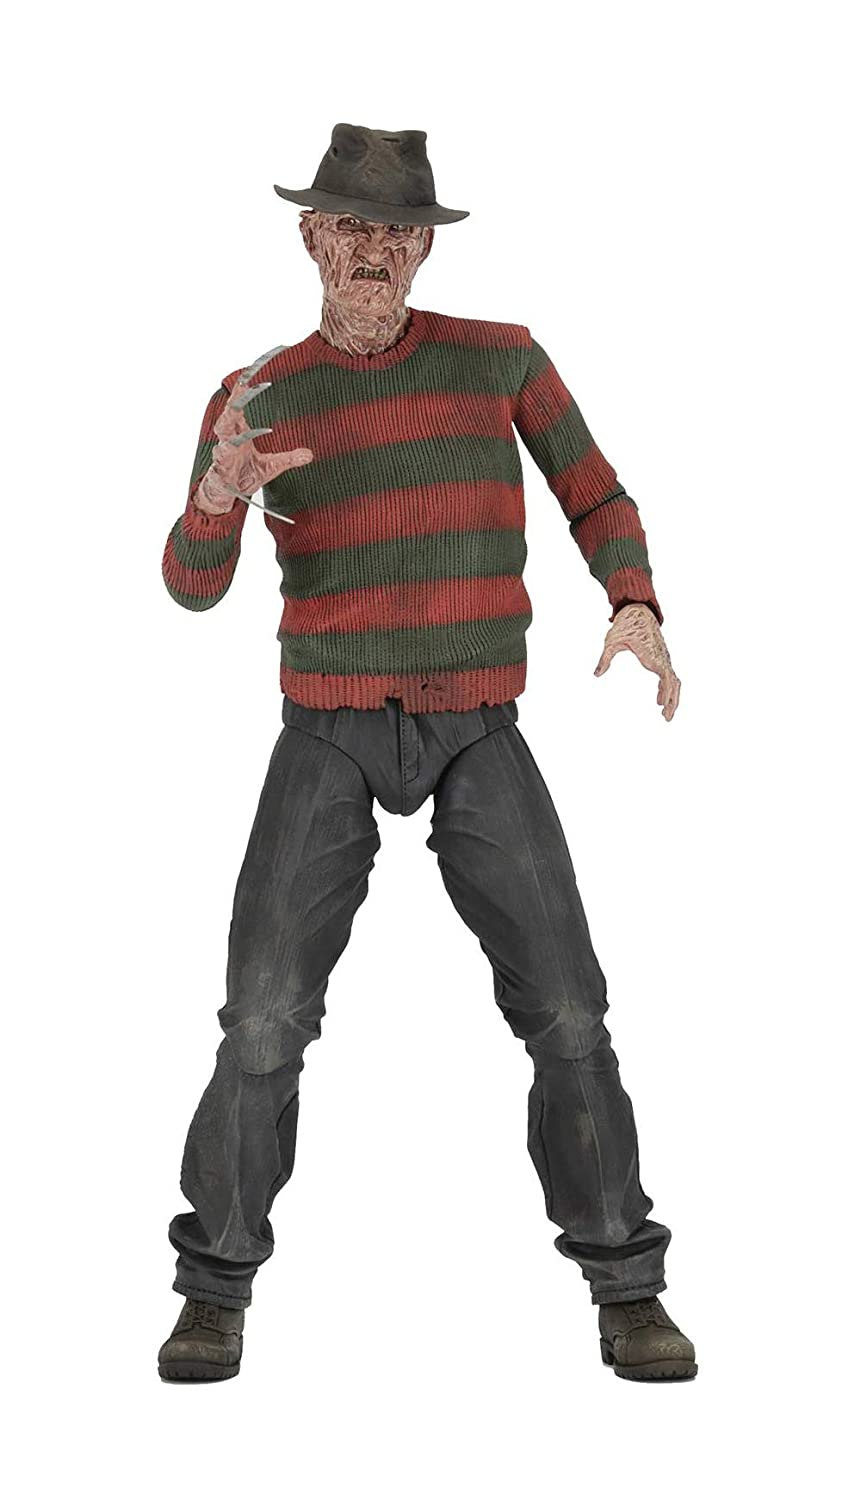 Nightmare On Elm Street 39899 Action Figur, Mehrfarbig Neca